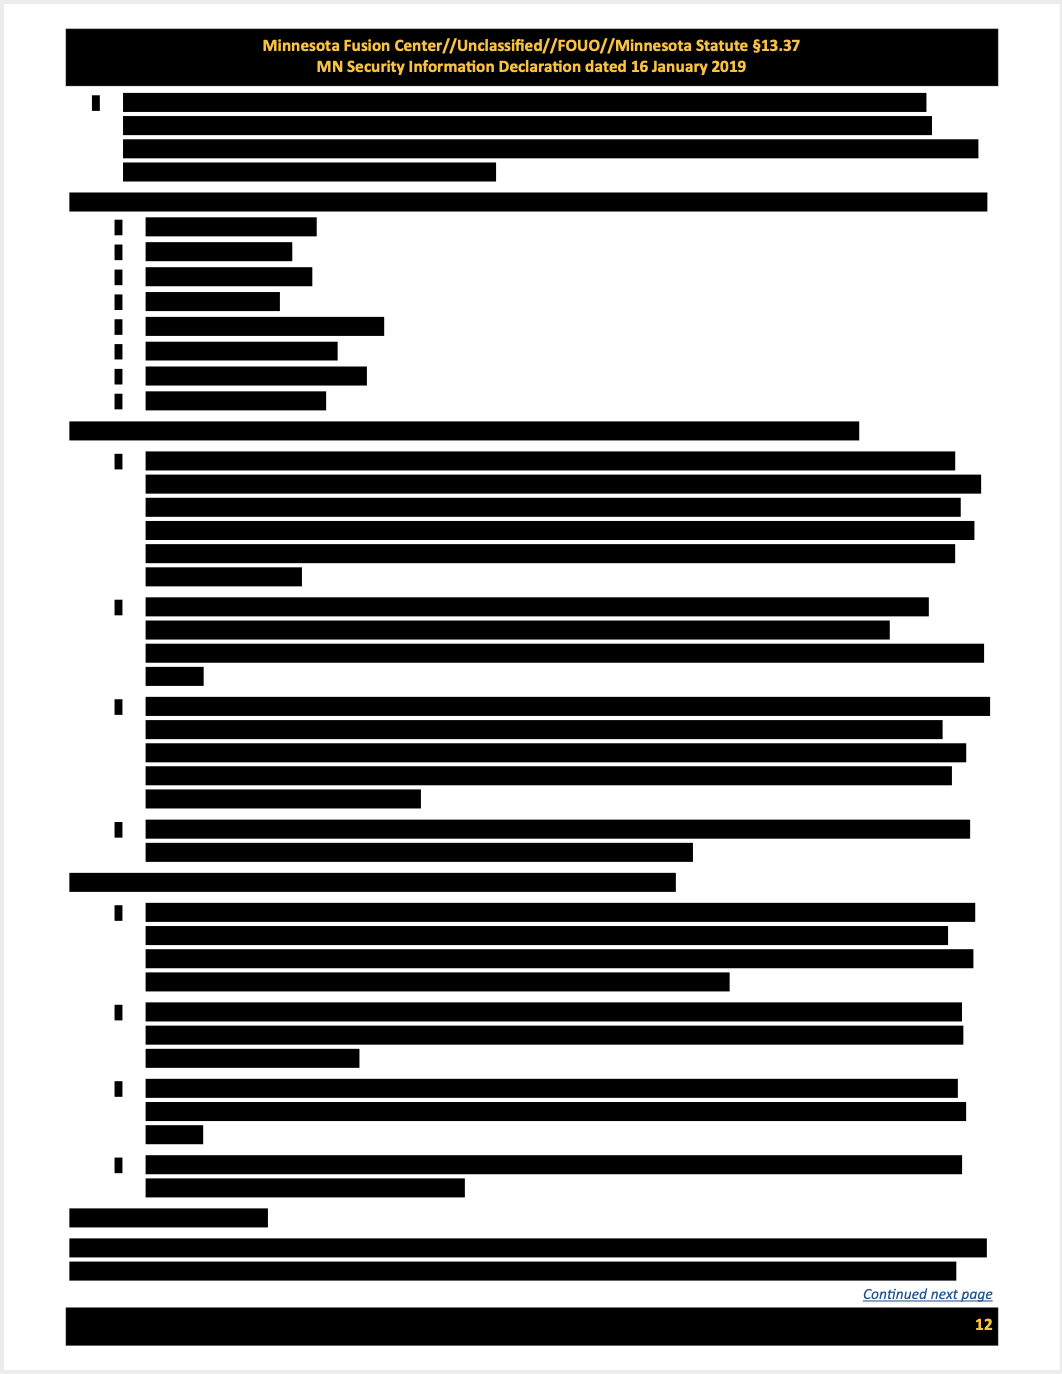 A fully redacted email.